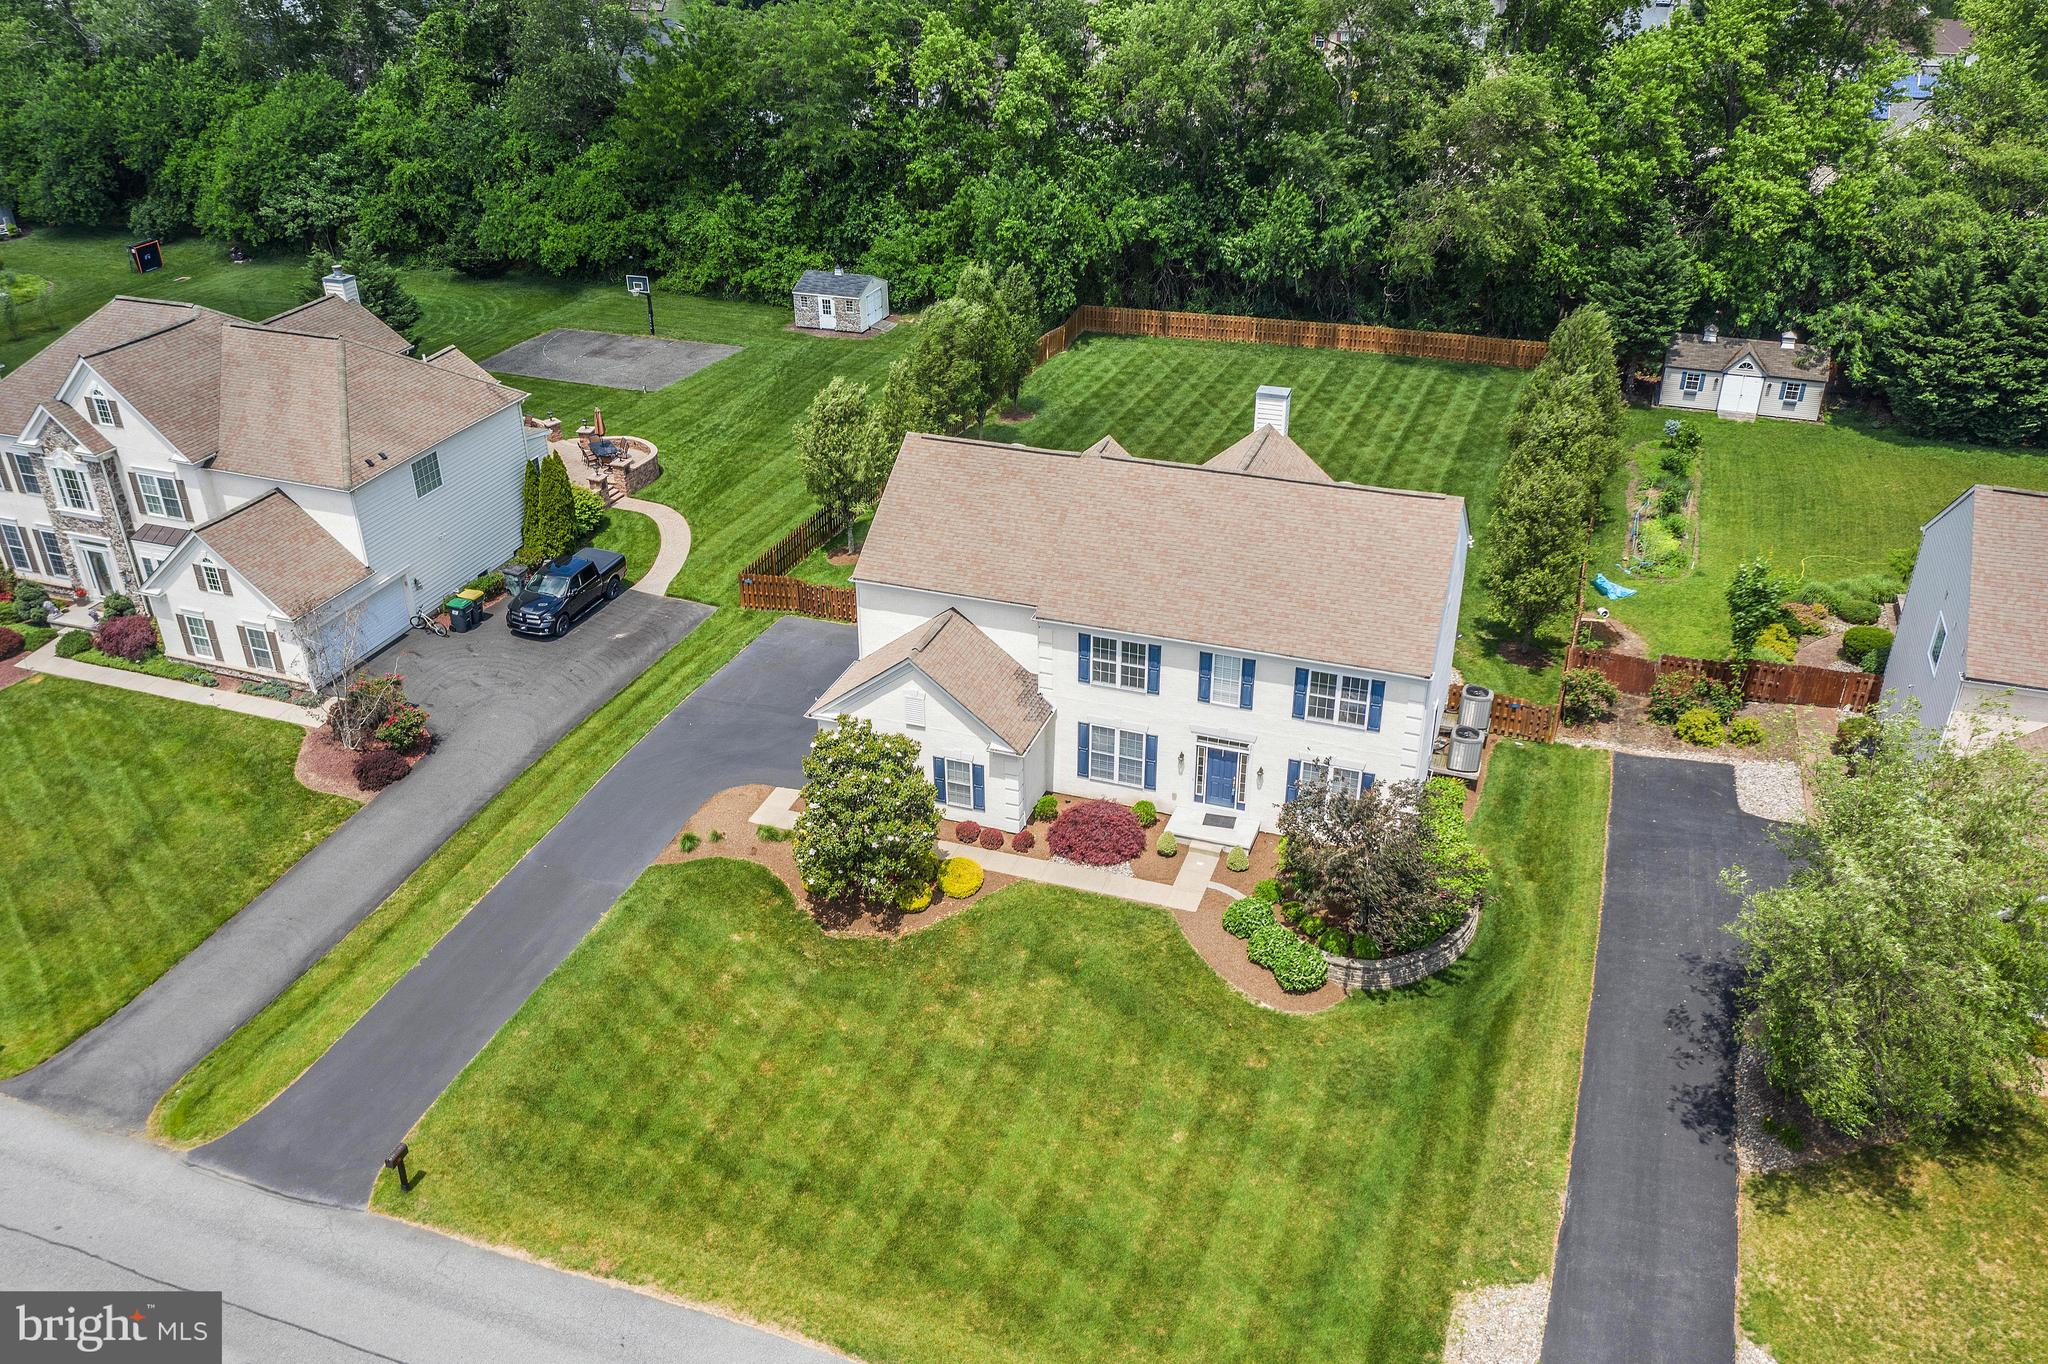 """Visit this home virtually: http://www.vht.com/434074029/IDXS - Tour this home virtually and then feel free to schedule a showing: https://my.matterport.com/show/?m=7SssiyHTFmF&mls=1   Welcome Home to 75 Hempstead Drive in the award winning Appoquinimink School District, offering the perfect lifestyle of convenience and private retreat!  This stucco front home with 2 car side entry garage, architectural shingle roof and great landscaping has eye catching curb appeal.  This model provides an open and contemporary feel while not skimping on rooms.  The grand two story foyer is flanked by the office with french doors and the dining room with crown molding, raised panel wainscoting and chair rail. Stunning kitchen with 42"""" raised panel wood cabinetry with crown molding, tumbled tile backsplash, convenient desk area which makes for a great landing station and area to charge up those electronics, center island with counter seating, built in double sink, expansive amount of corian countertops and sleek appliances, gas cooking.  The kitchen is open to both a bright sunroom with lots of flexibility for a use that fits your lifestyle and a comfortable yet phenominal 2 story family room with dramatic wood work and marble surround gas fireplace and remote controlled blinds.  Tucked away is a dry bar with the recipe for a fun night on your incredible hardscaped patio with stone wall surround overlooking the lush fenced back yard, backing to mature trees.  Living room with crown molding.  Conveniently located powder room.  Main floor laundry room.  Much of the main level has gleaming hardwood floors.  Unique front and back staircase leads you to the upstairs.  Master suite featuring double door entry, tray ceiling, triple windows, huge walk in closet, tiled master bath with expansive vanity with double sinks, soaking tub, large stand up shower.  Rounding out the upstairs are 3 additional bedrooms all of good size with great closet space and a full tiled hall bath with double sinks"""